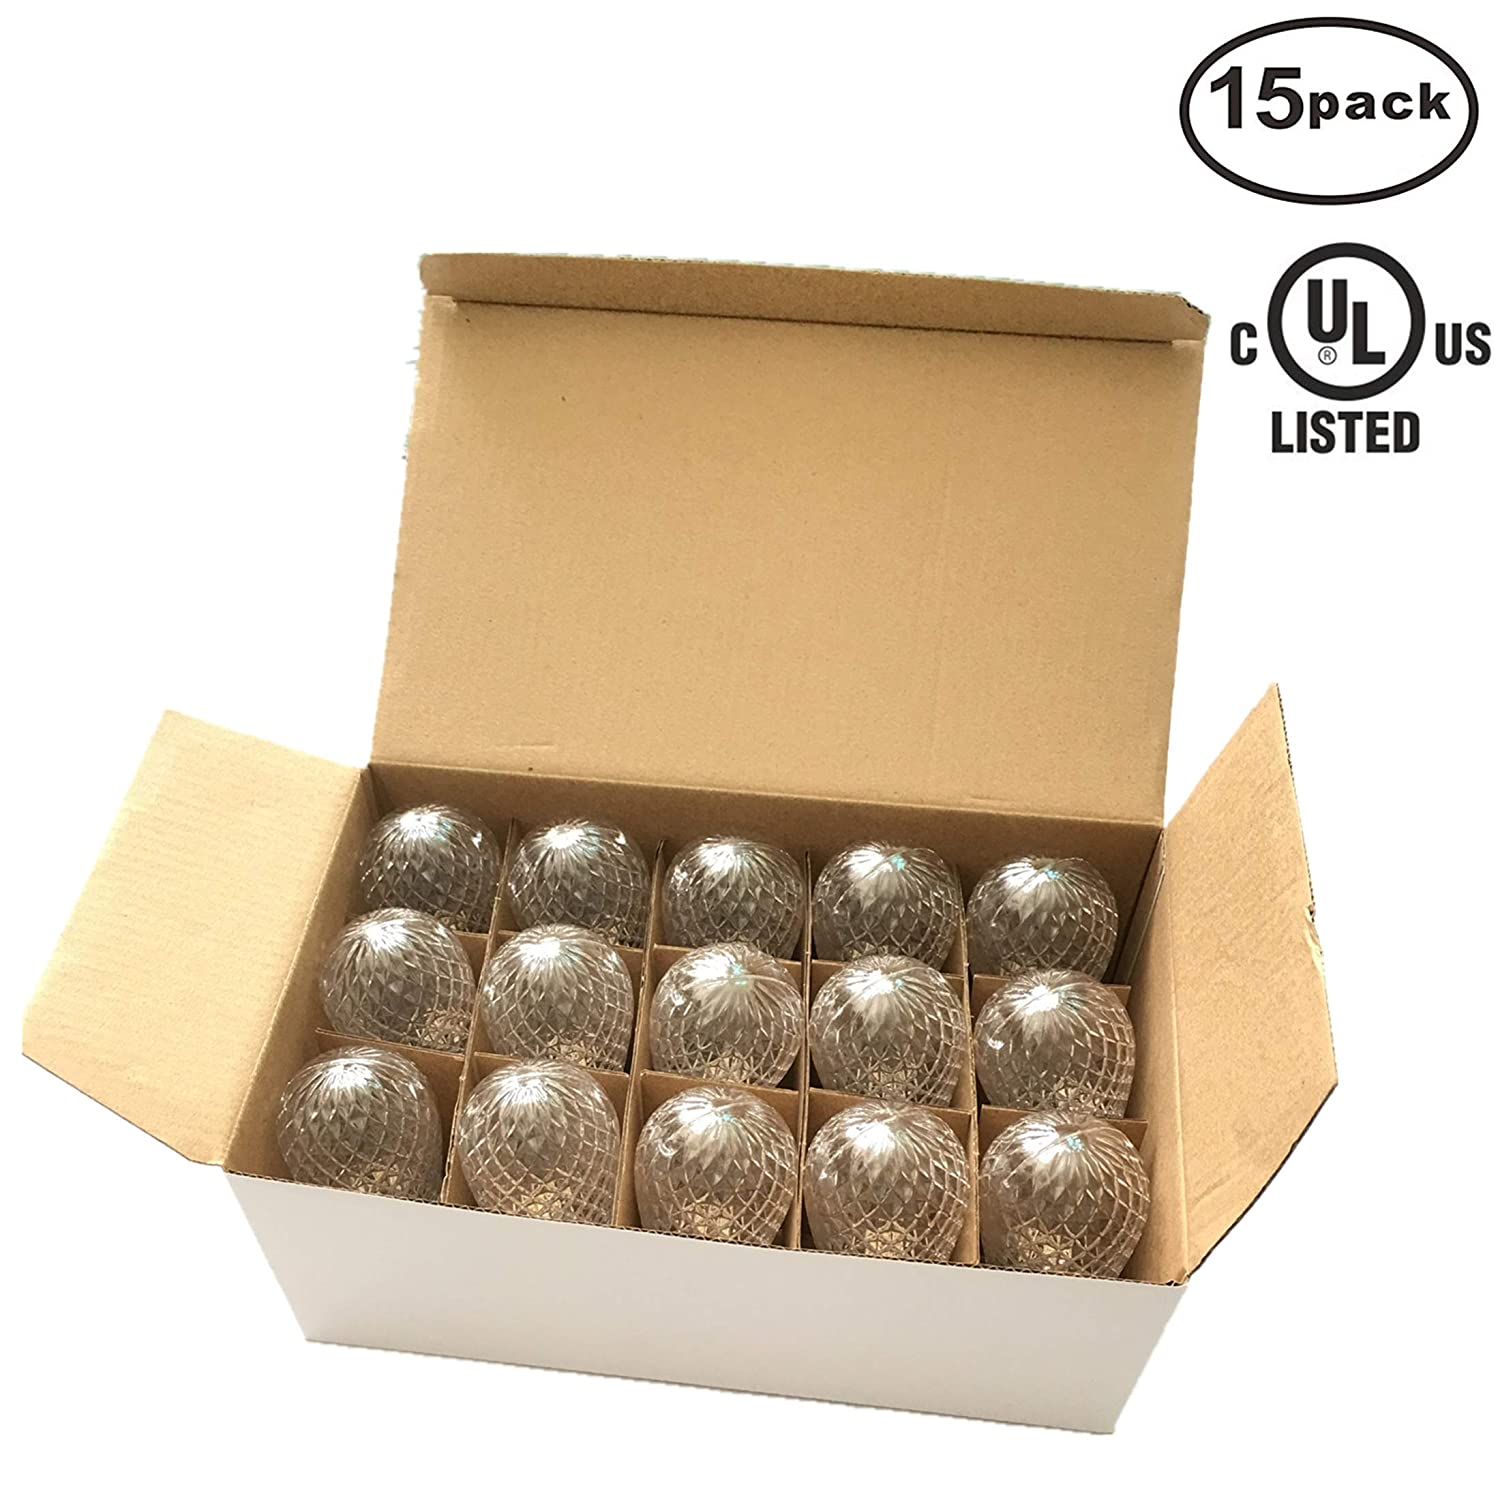 Indoor//Outdoor Use,Warm White,E17//C9 Base,0.5Watt,Dimmable,Durable,Shatterproof G40 Faceted Replacement LED Bulbs for C9 Outdoor Christmas String Lights 25 Pack